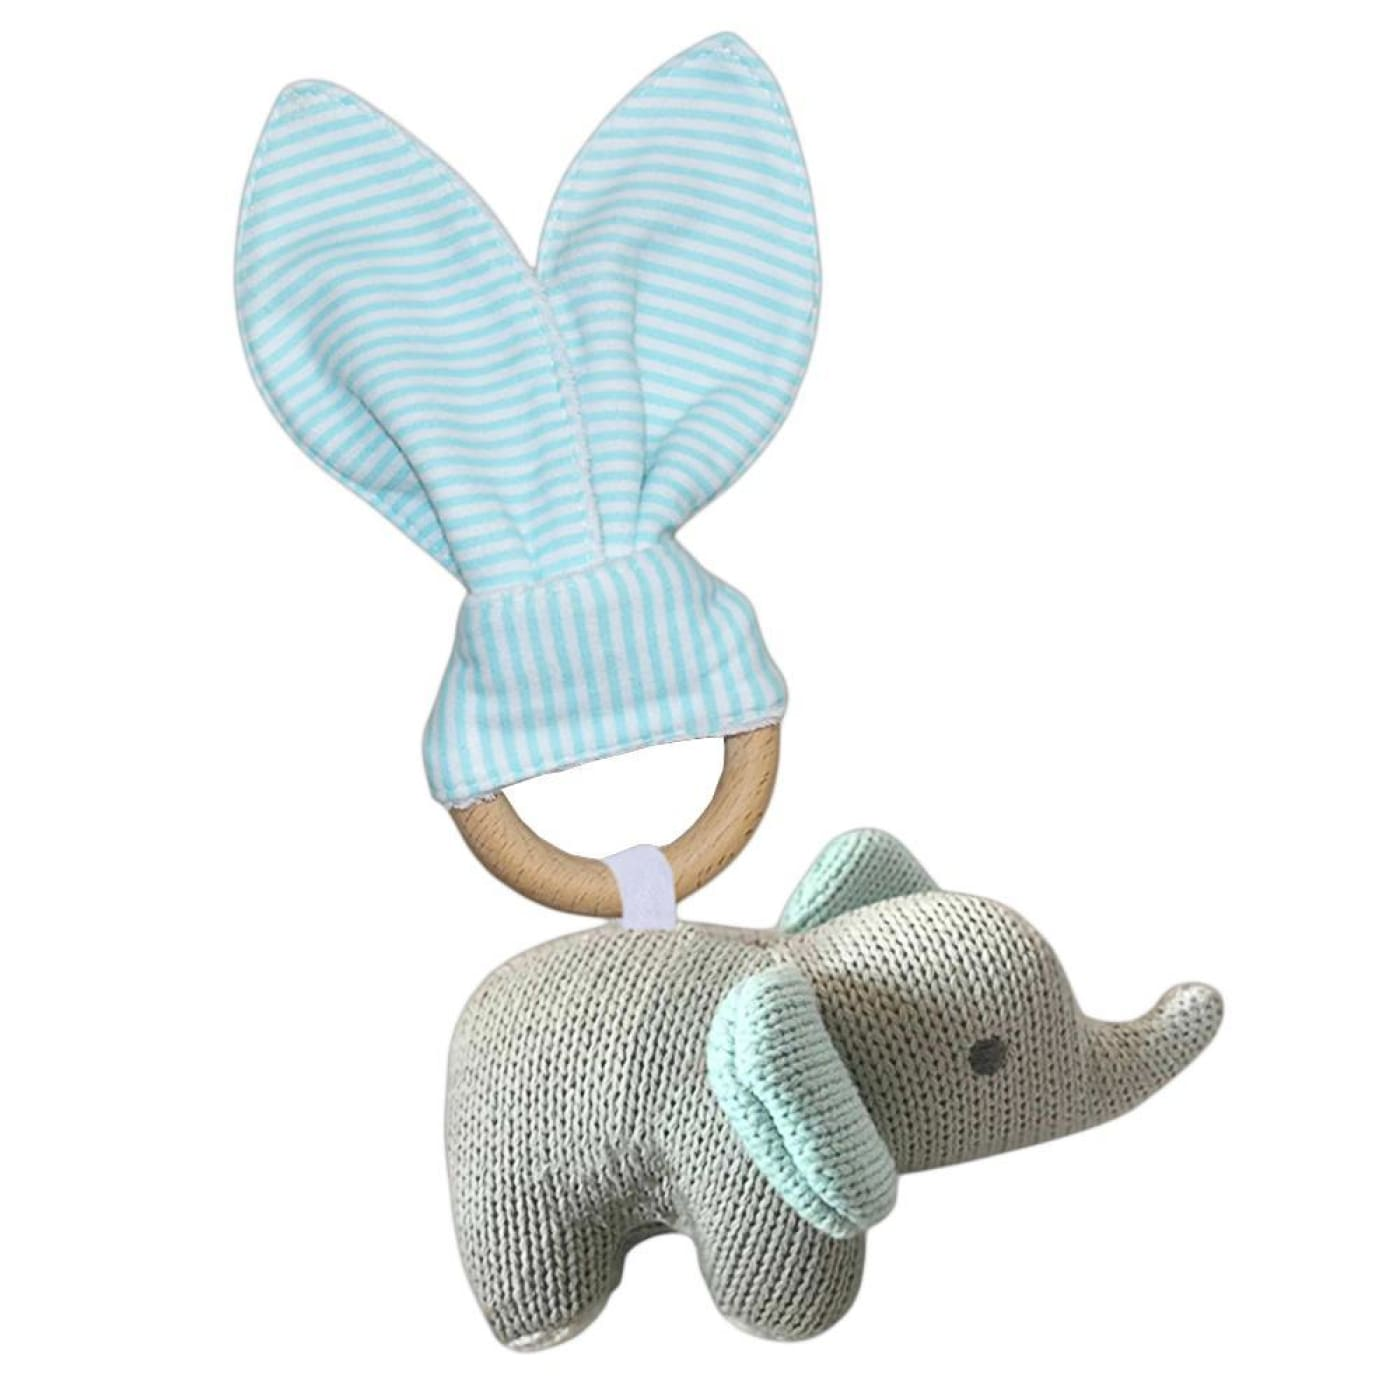 Living Textiles Knitted Toy Teether Set - Elephant - NURSING & FEEDING - TEETHERS/TEETHING JEWELLERY